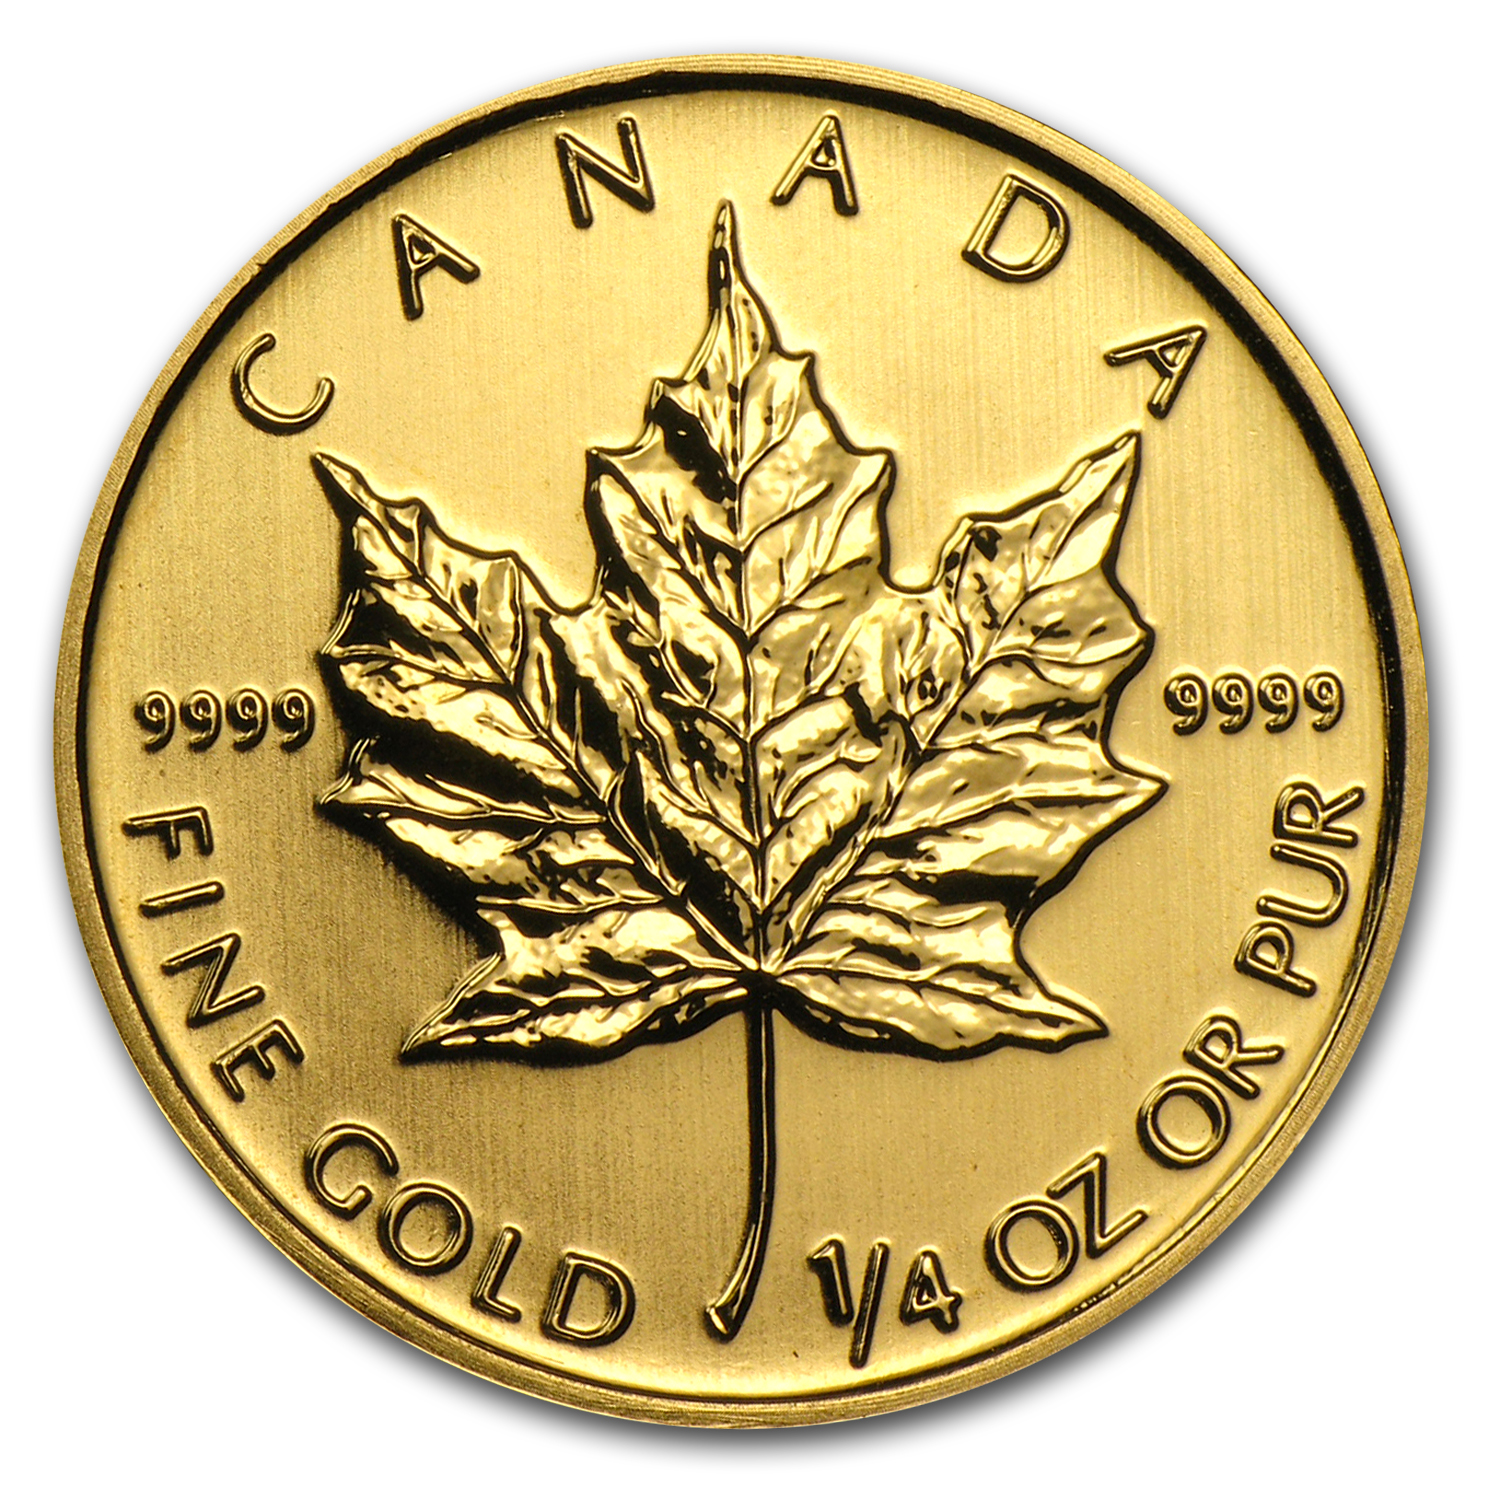 2012 Canada 1/4 oz Gold Maple Leaf BU